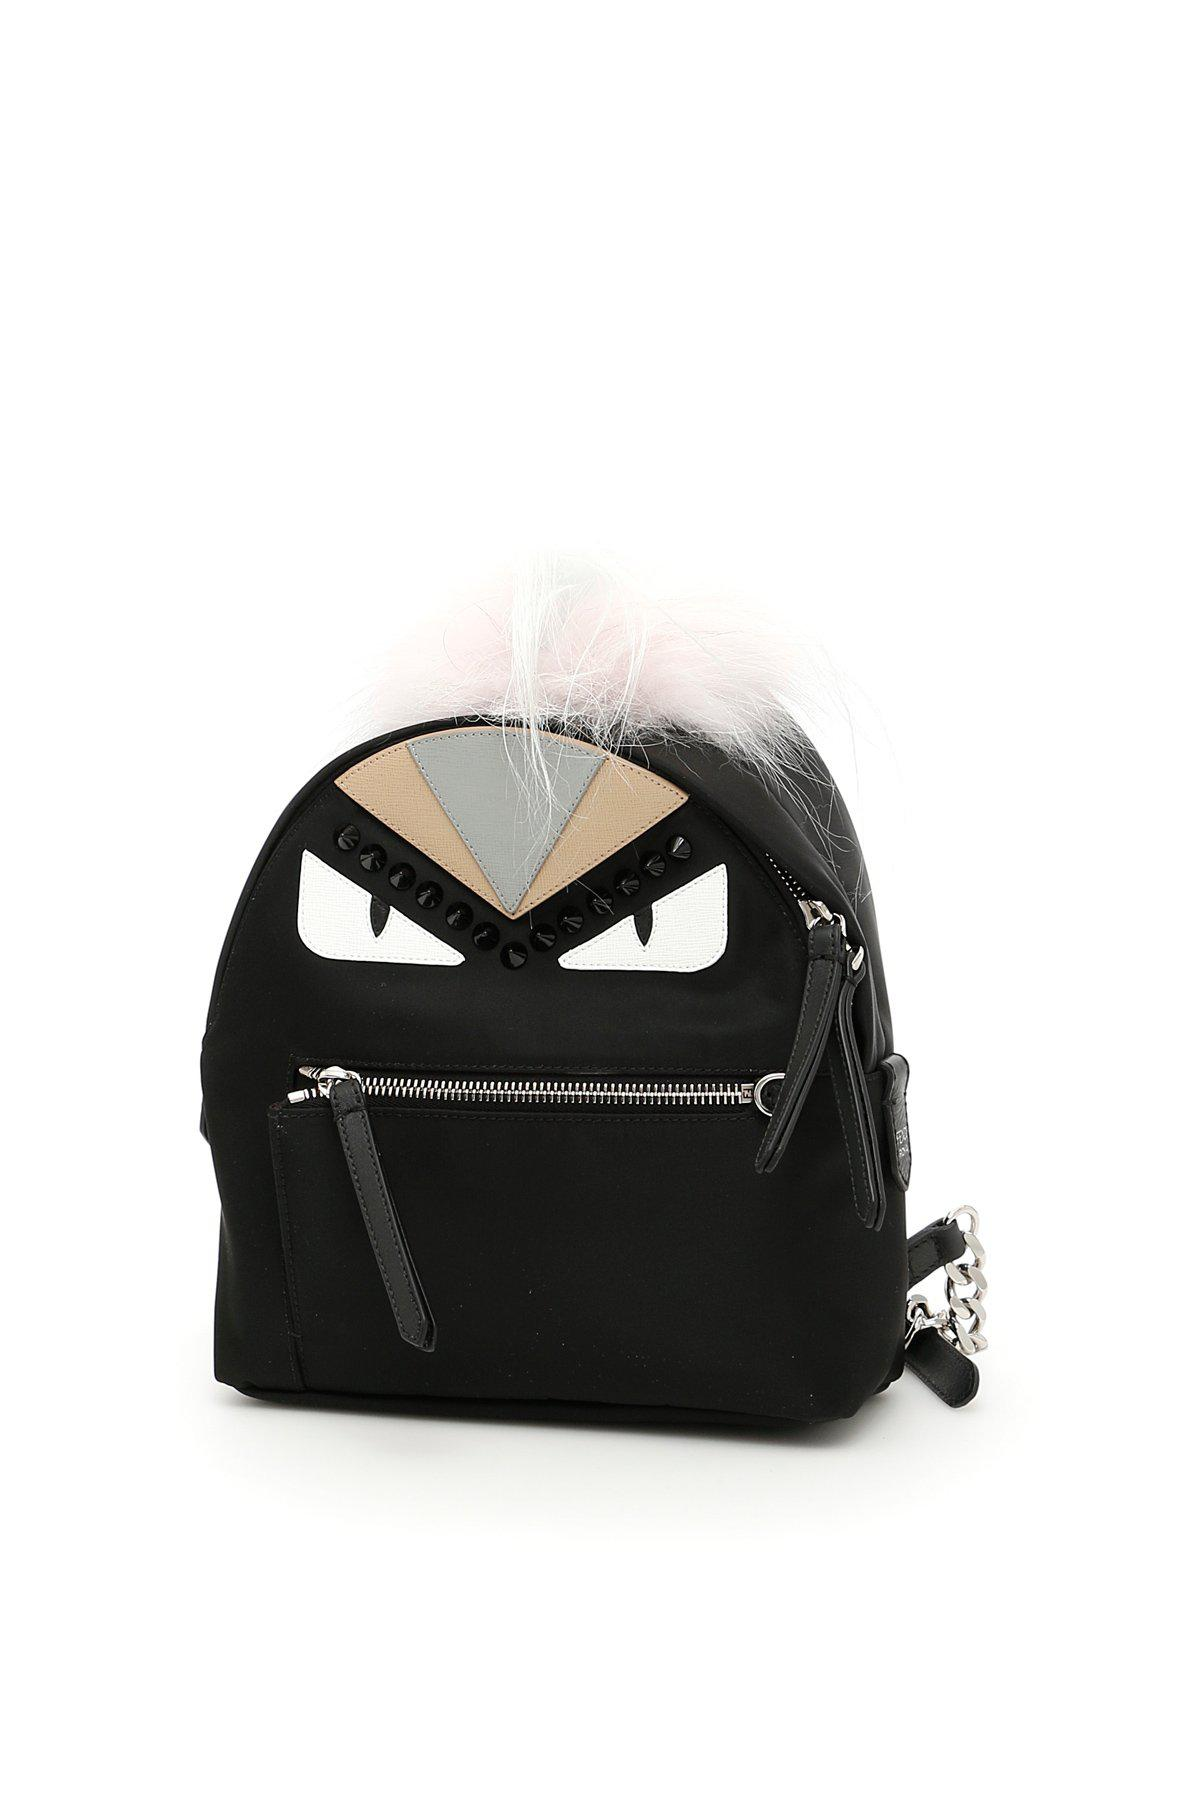 77cd7d22de Gallery. Previously sold at  Cettire · Women s Mini Backpack Women s Fendi  Bag Bugs ...